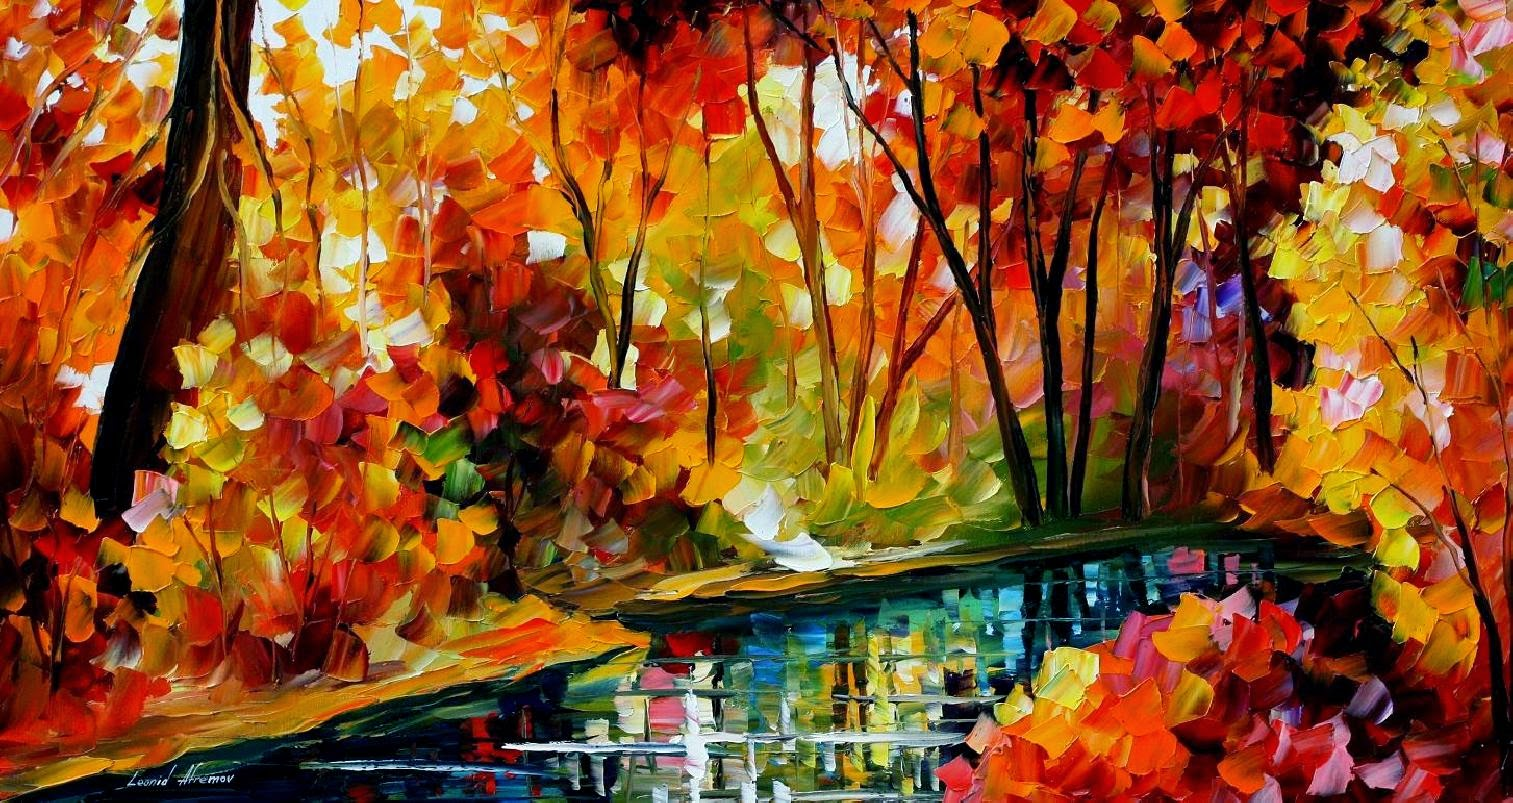 PAINTING Autumn Paintings by Leonid Afremov  ART FOR